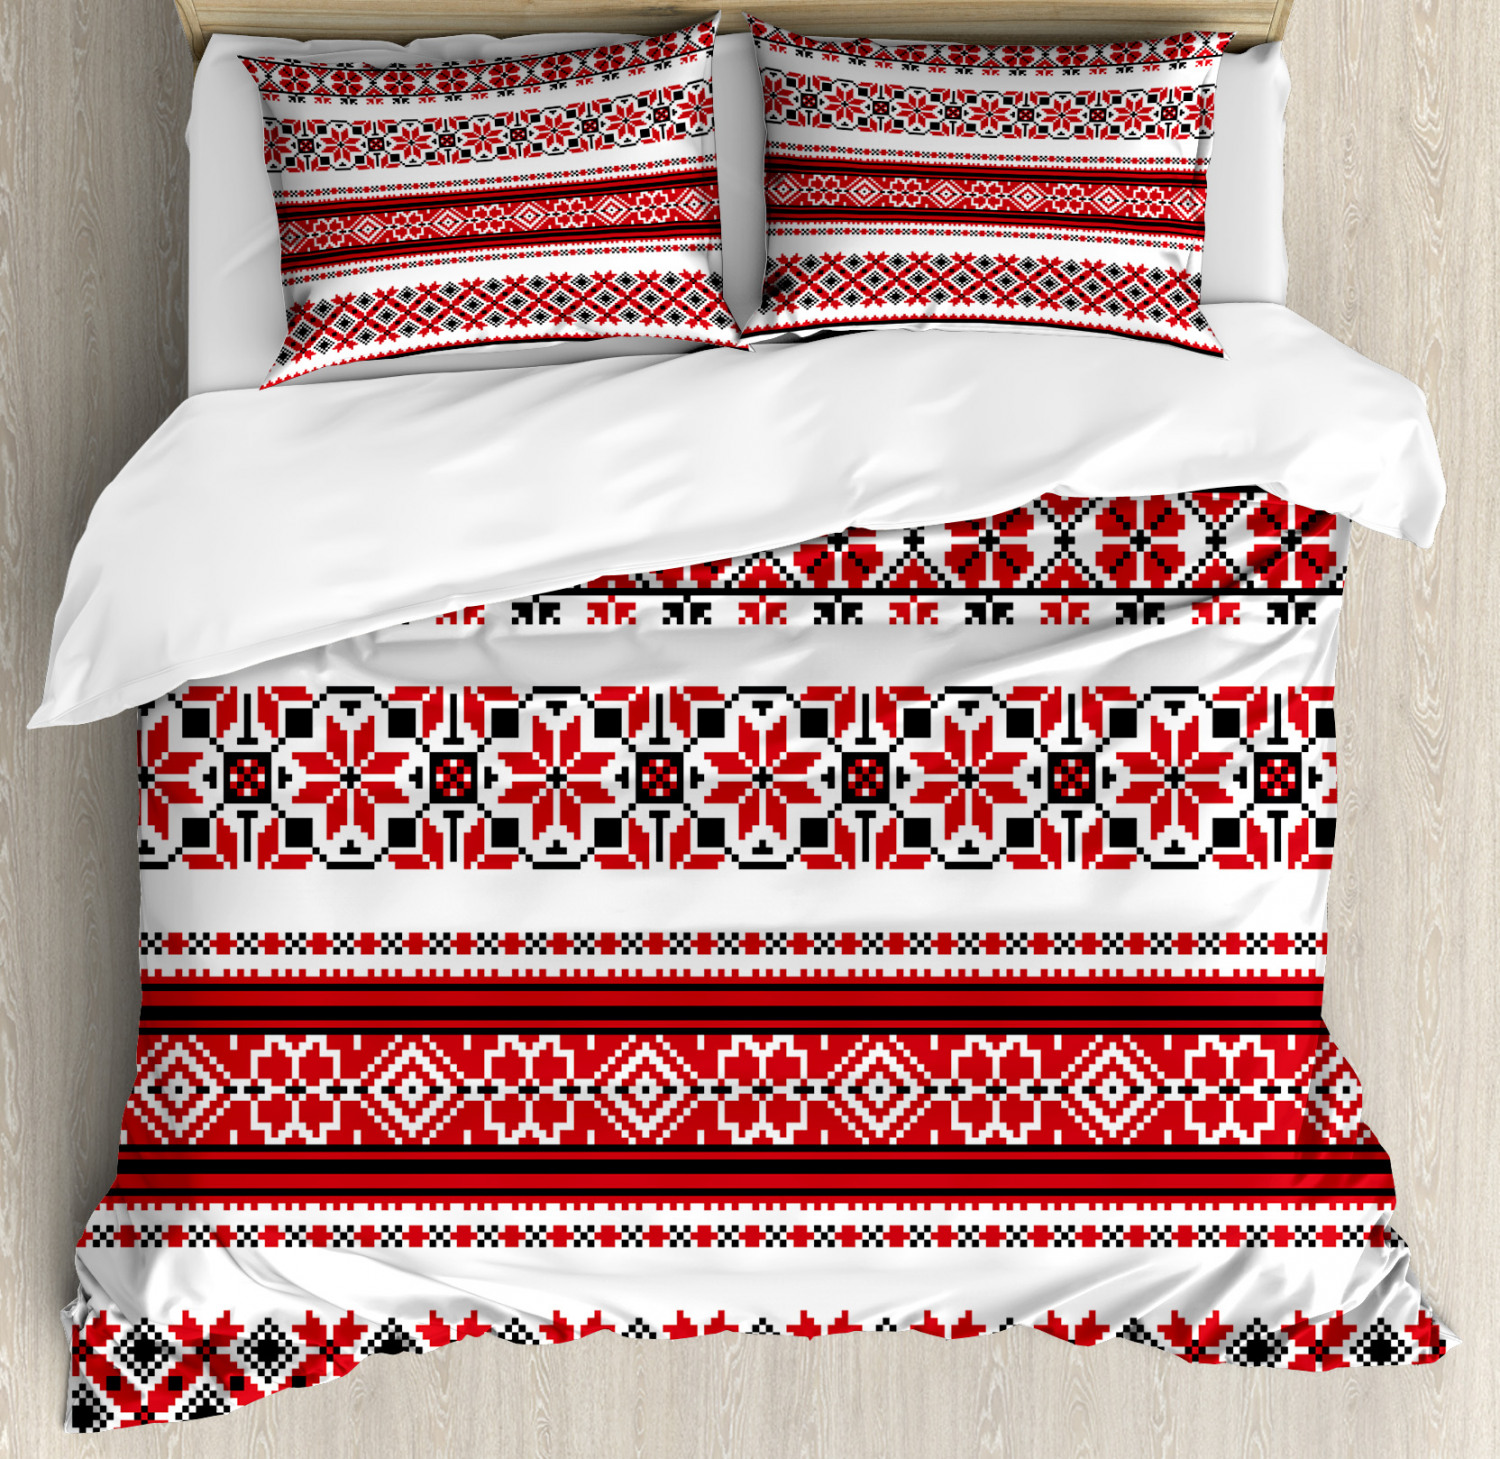 Red Duvet Cover Set with Pillow Shams Ukrainian Ethnic Accents Print